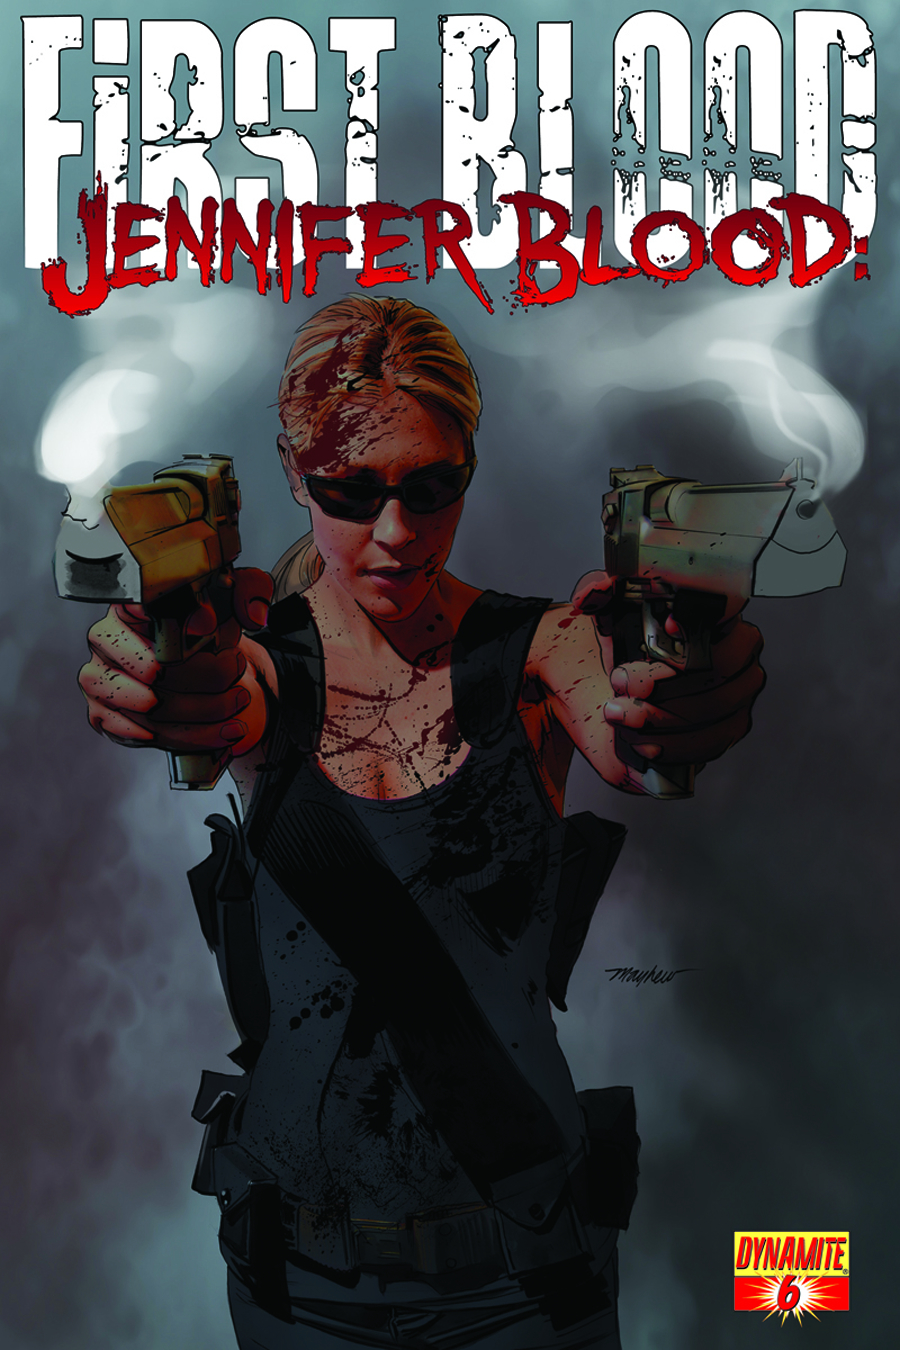 JENNIFER BLOOD FIRST BLOOD #6